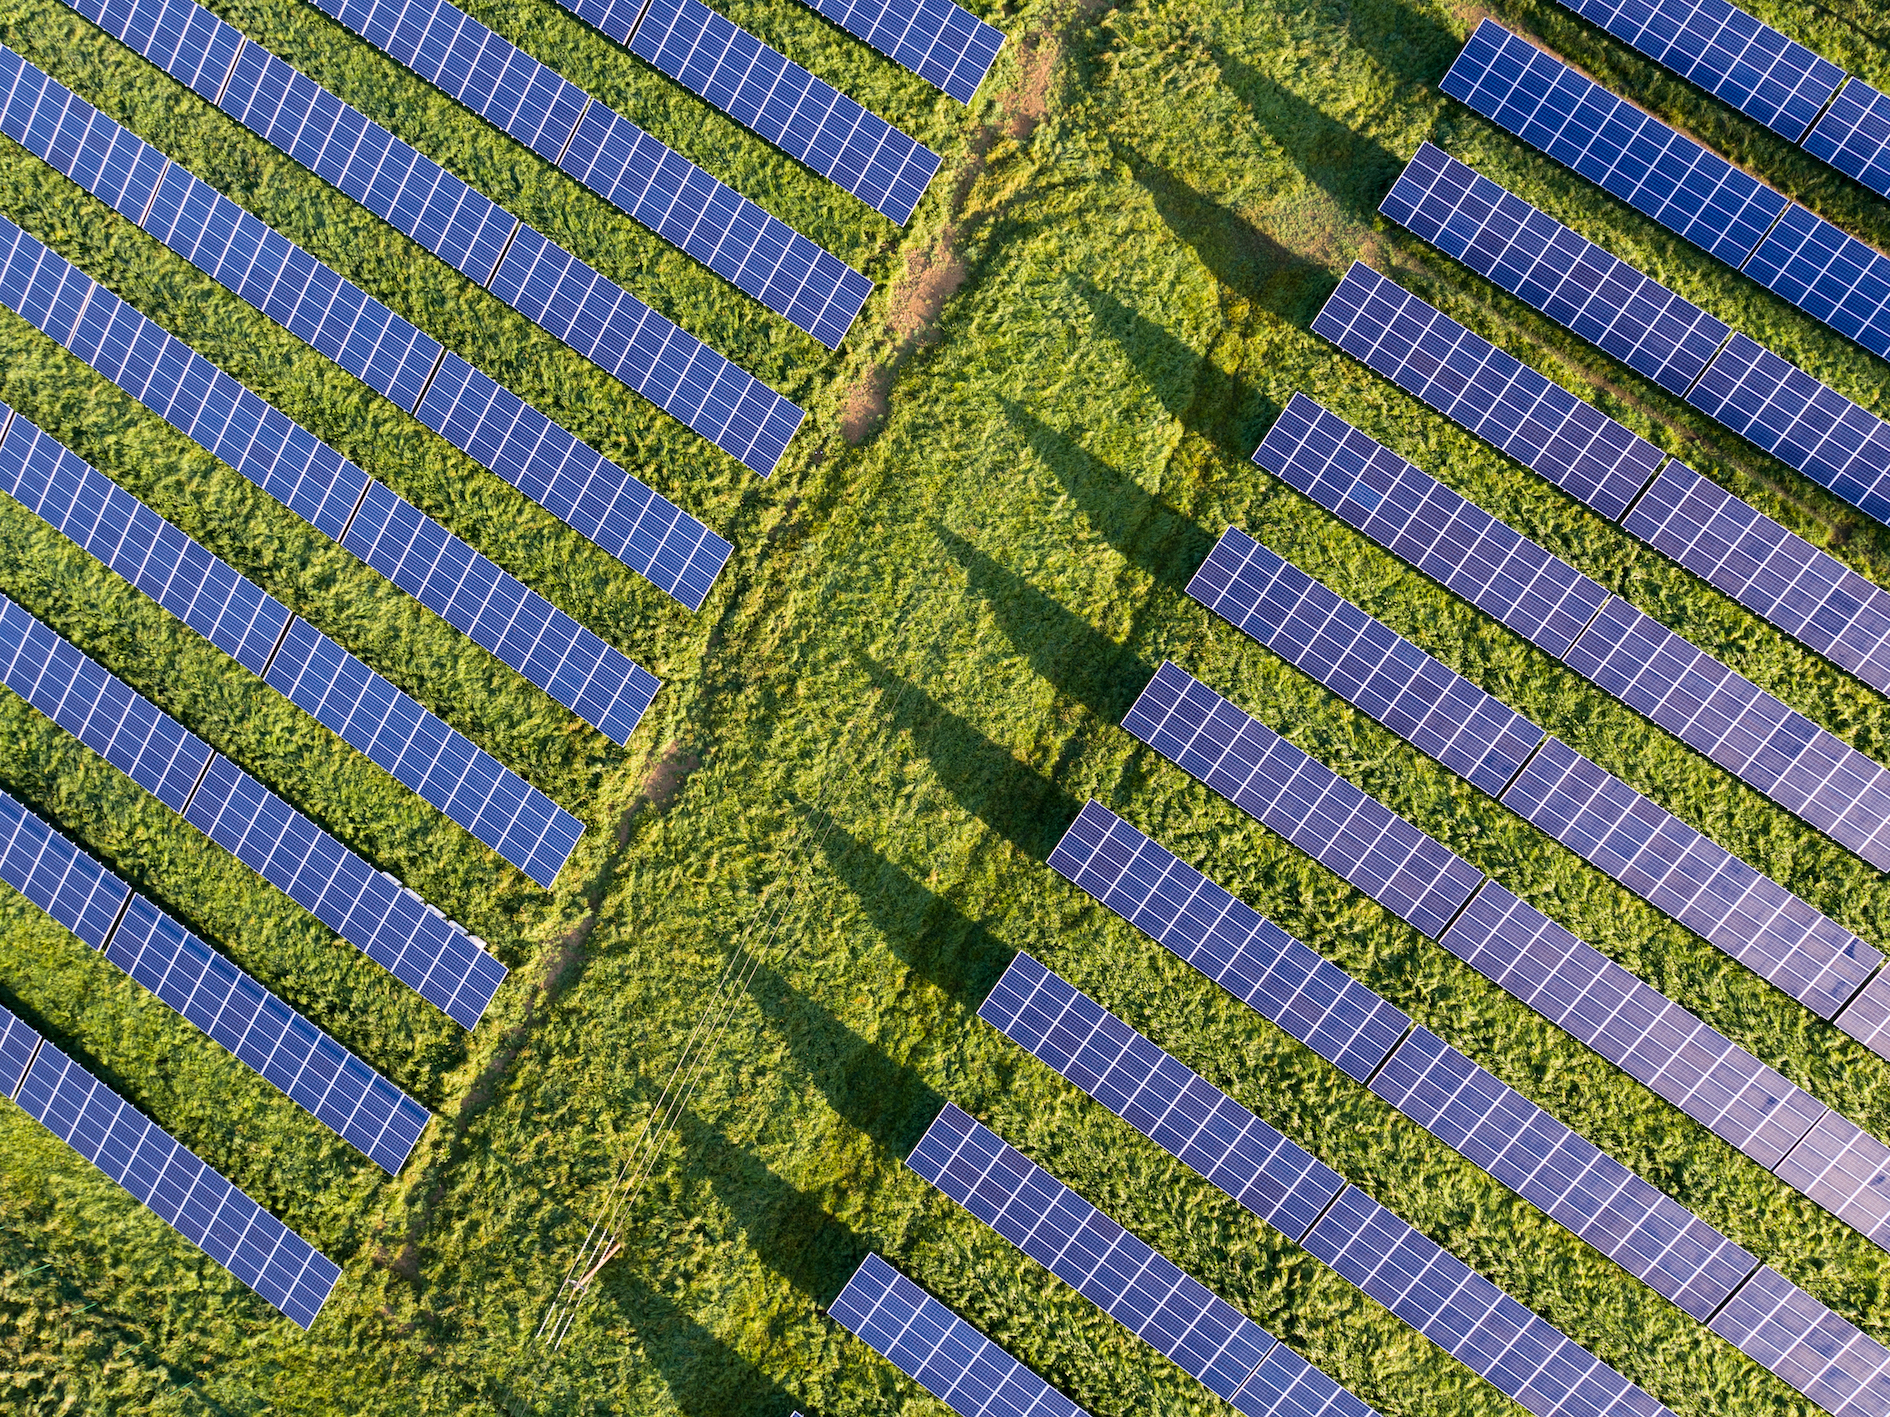 solar power over grass.jpg